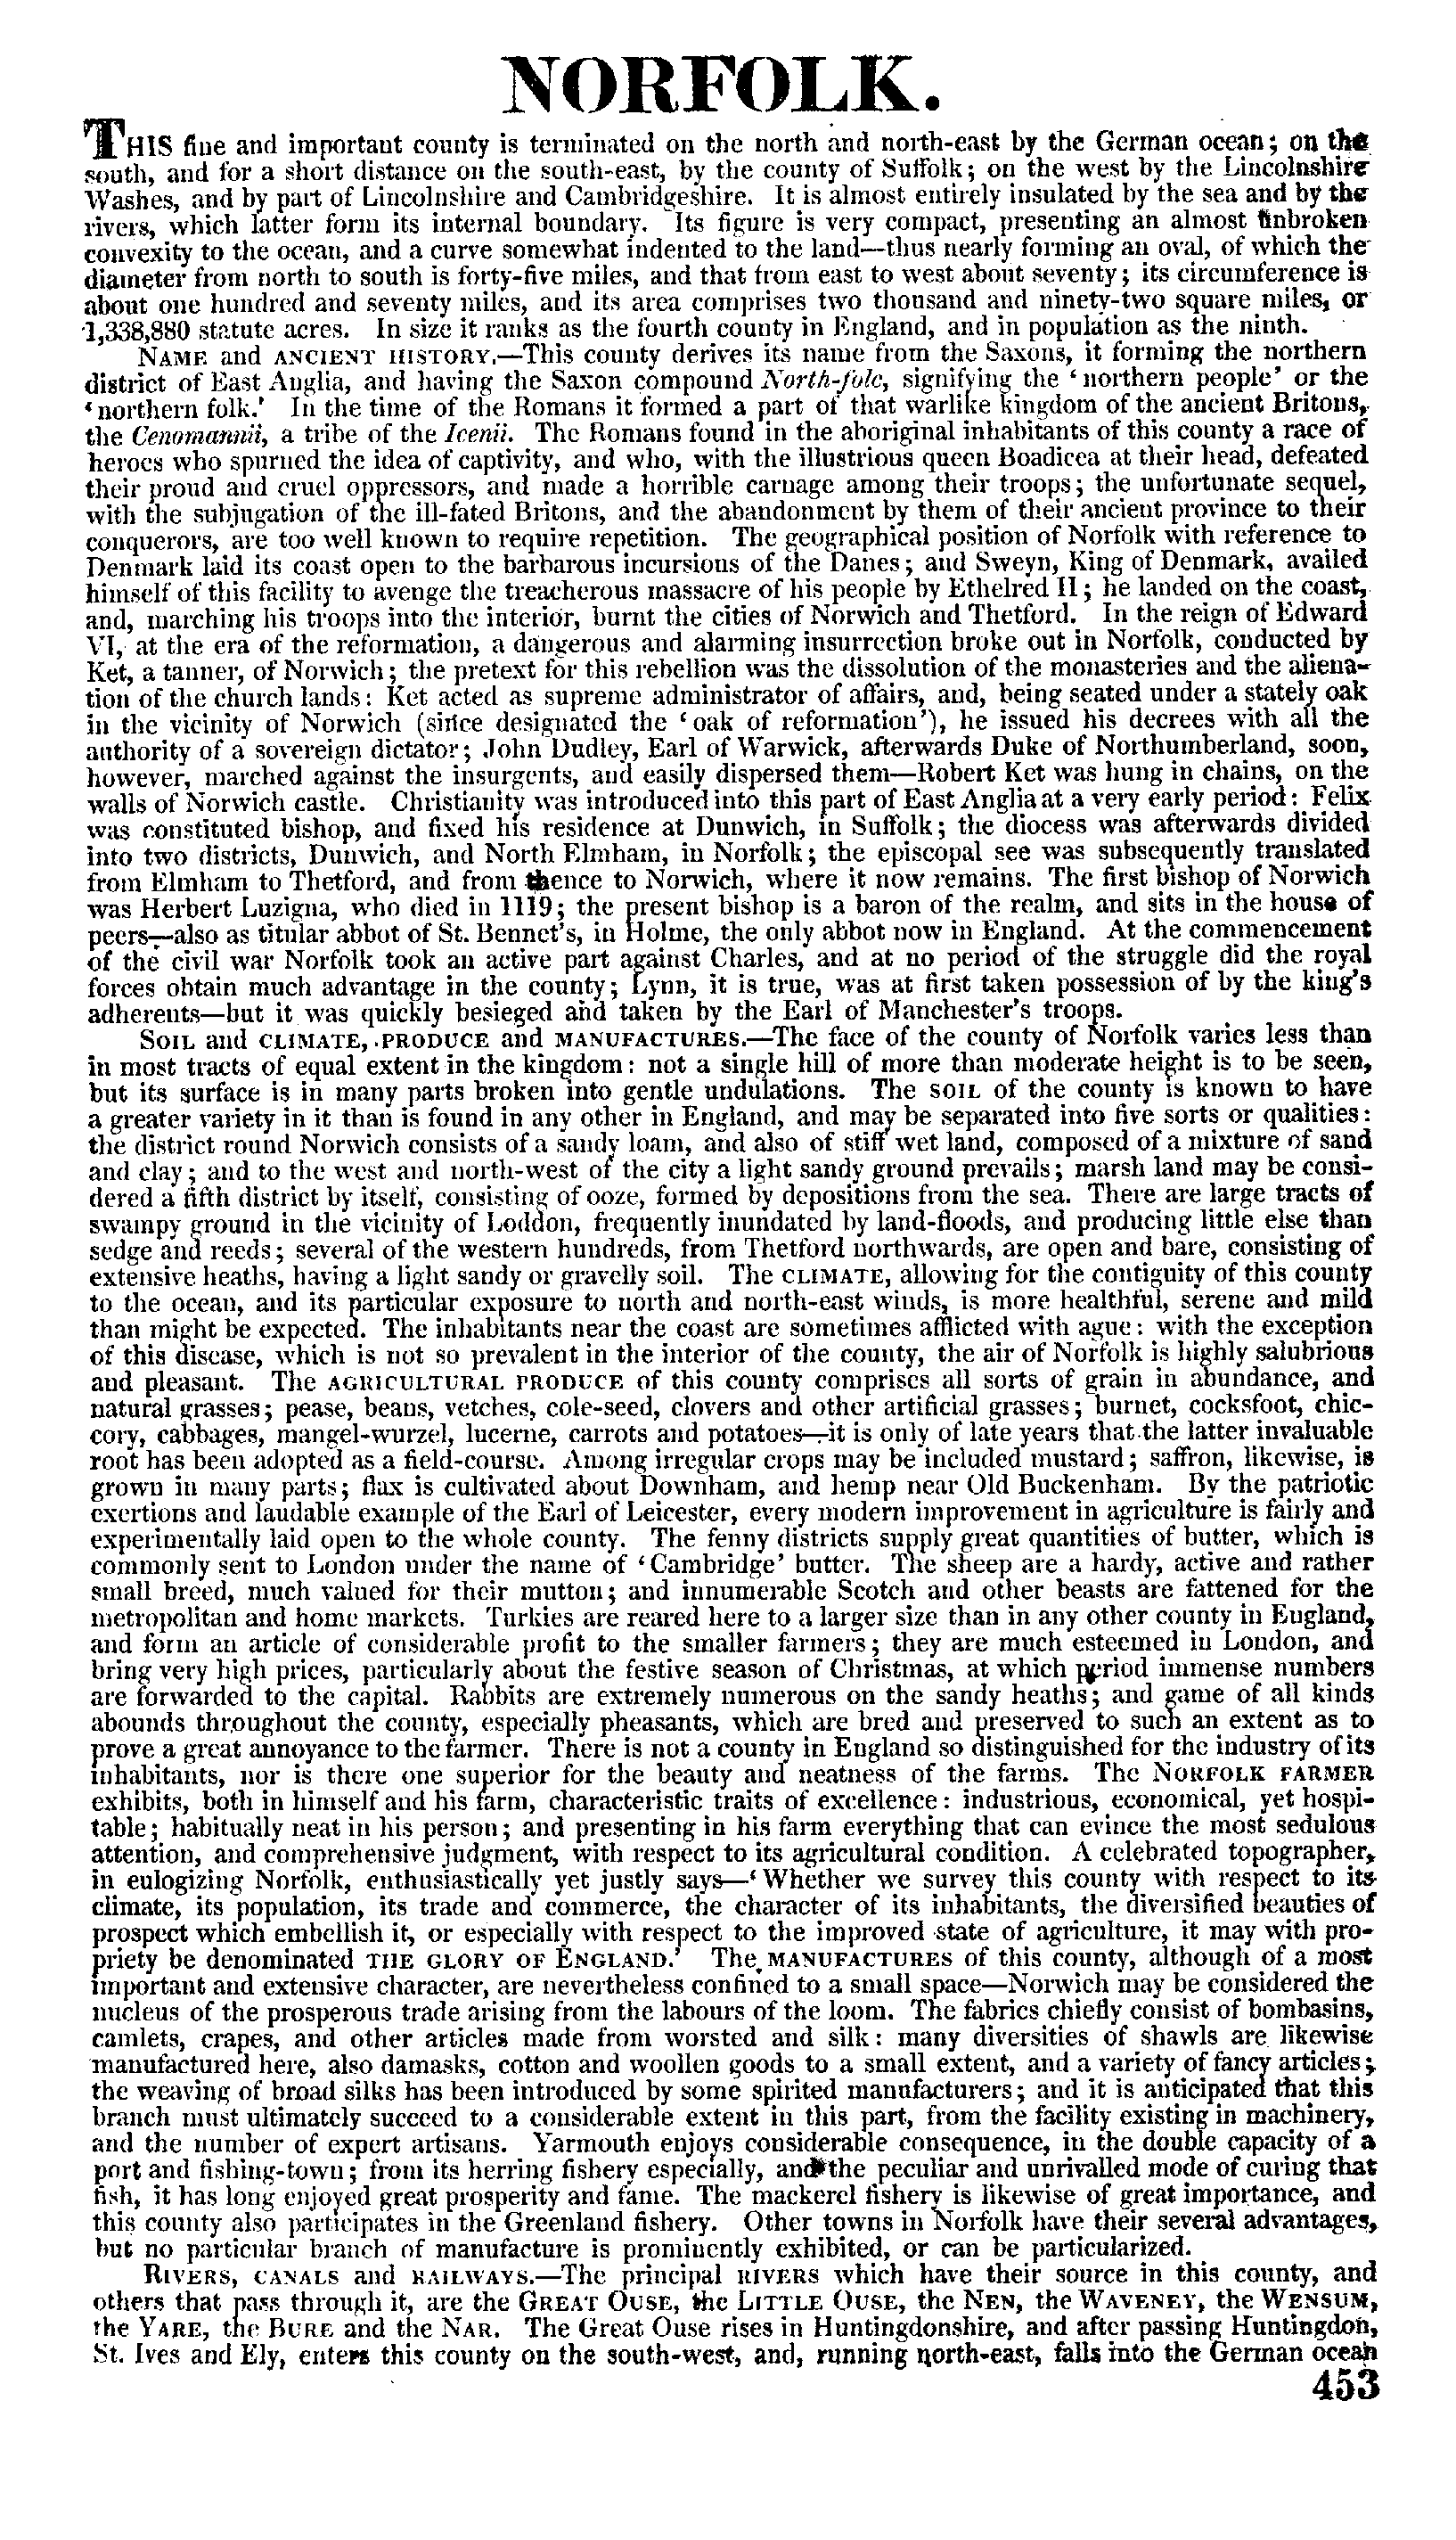 Pigot Directory of Norfolk, 1840 page 453 - click to open larger version in a new window